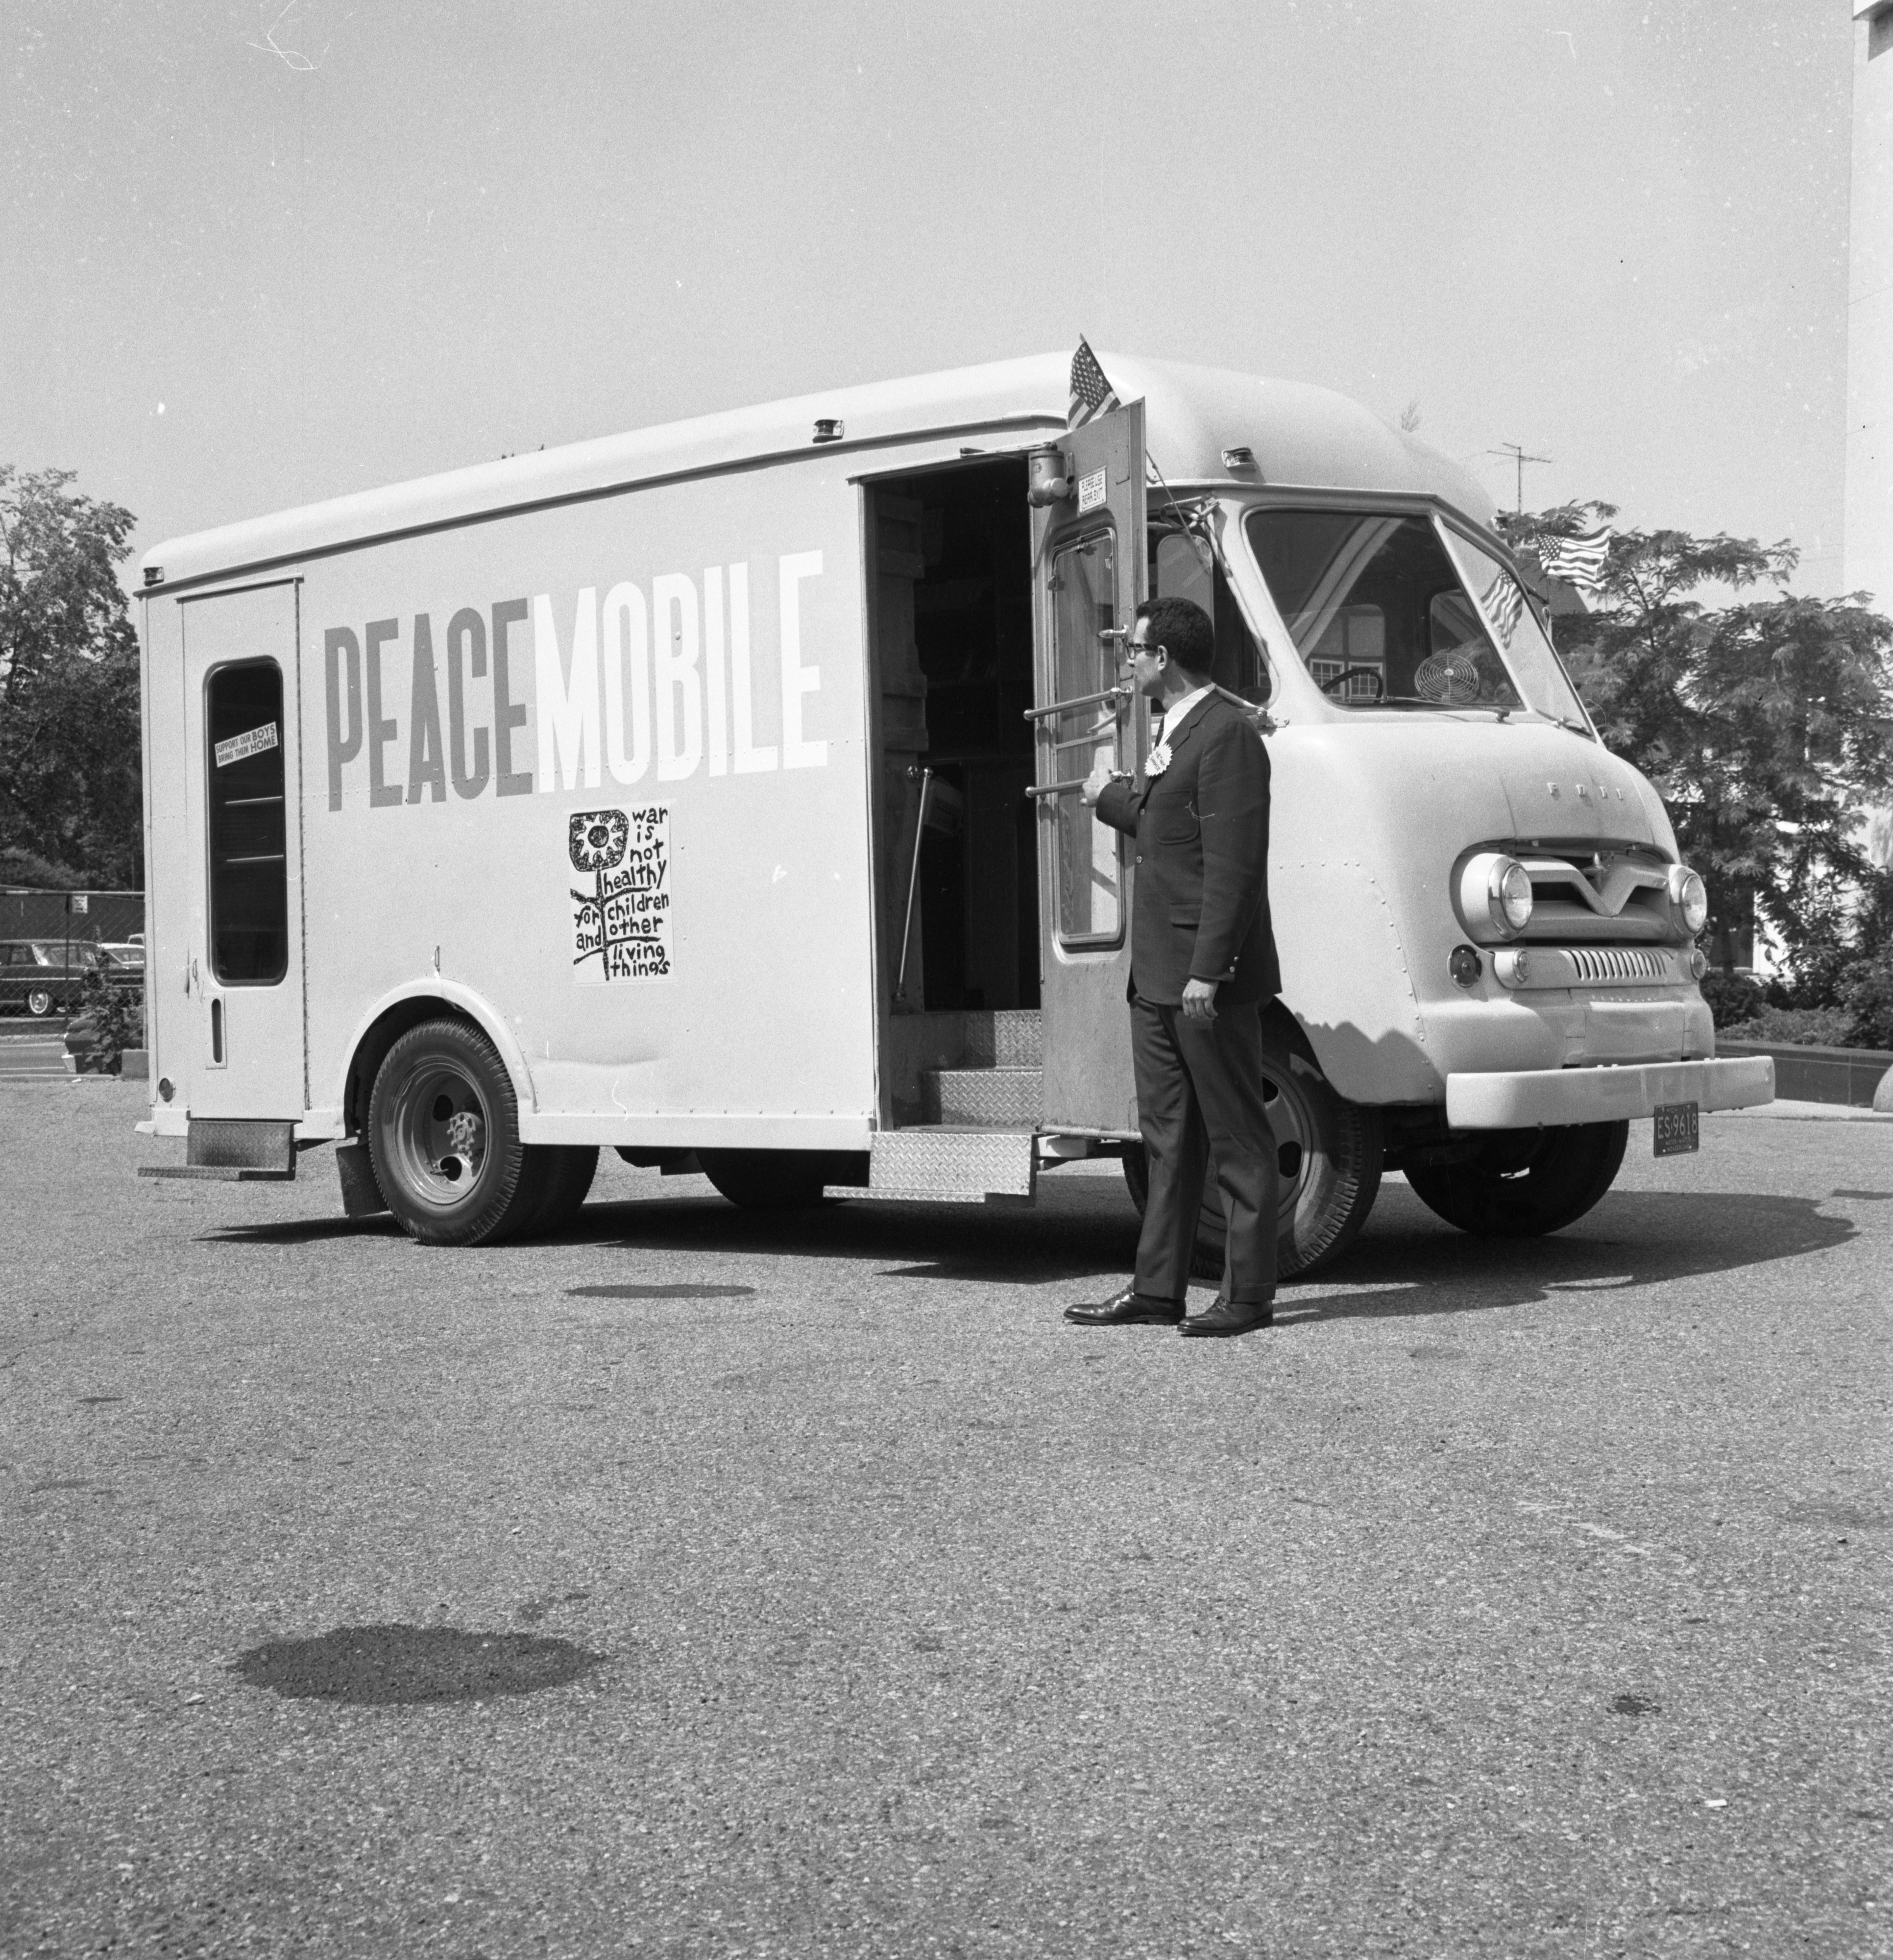 William R. Chilton poses next to the Peacemobile, July 1967 image